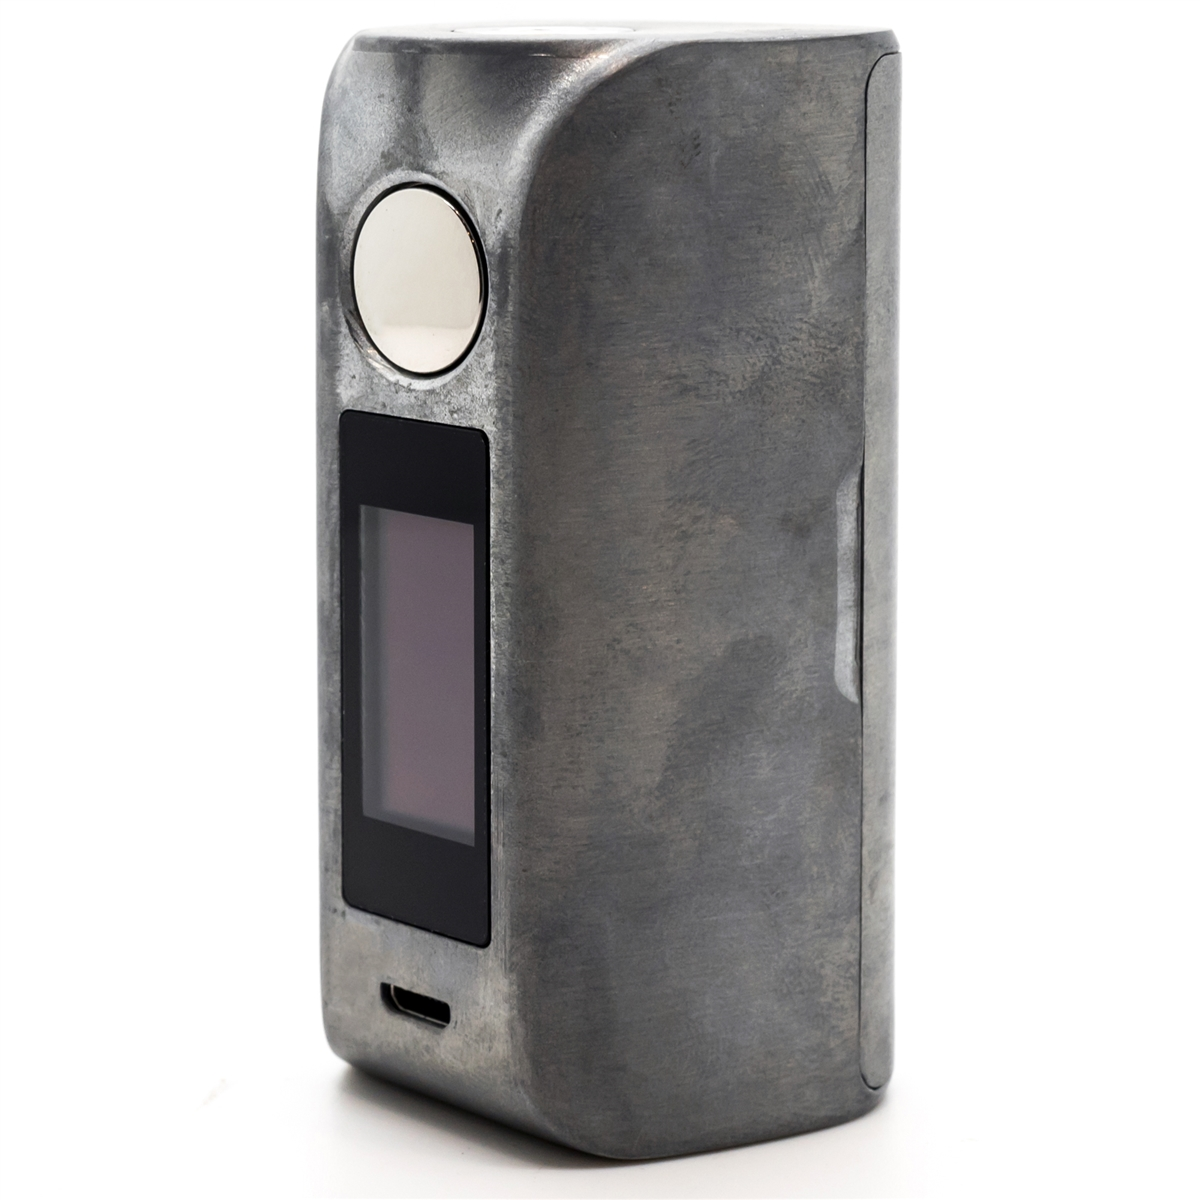 Buy The Minikin V2 180w Temp Control Mod by Asmodus at RedJuice.co.uk